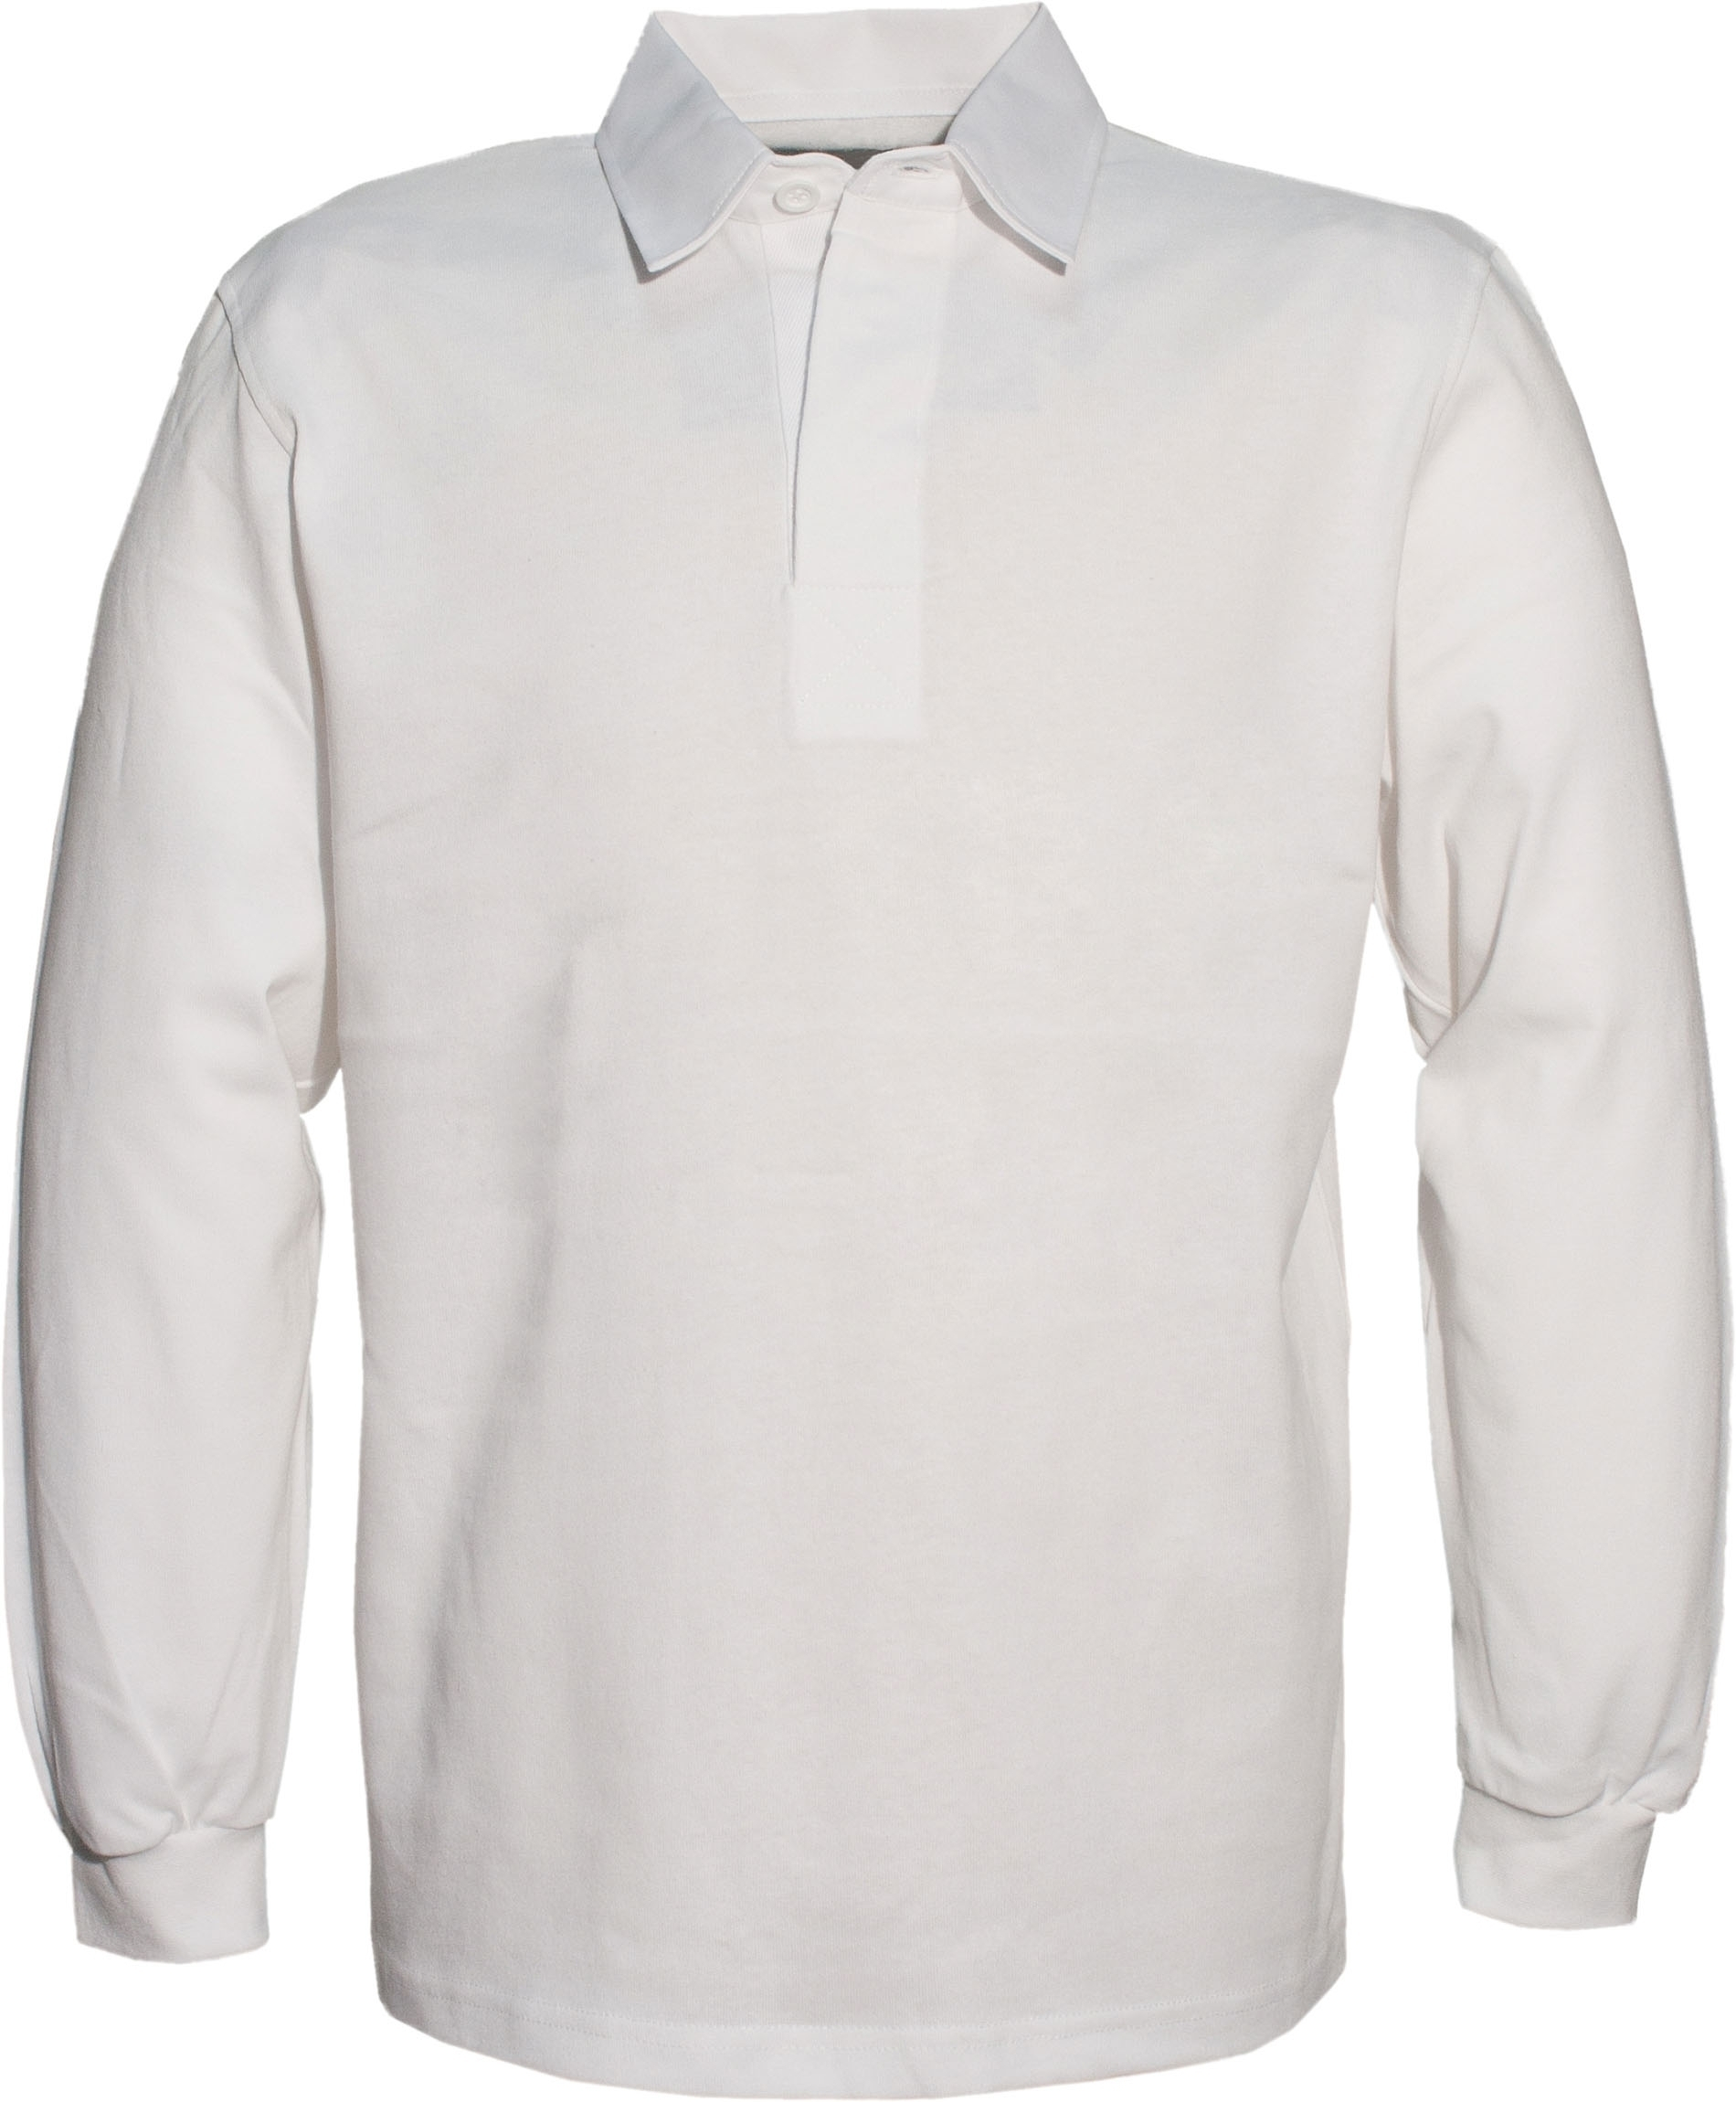 Polo Rugby Deluxe Blanc Blanc